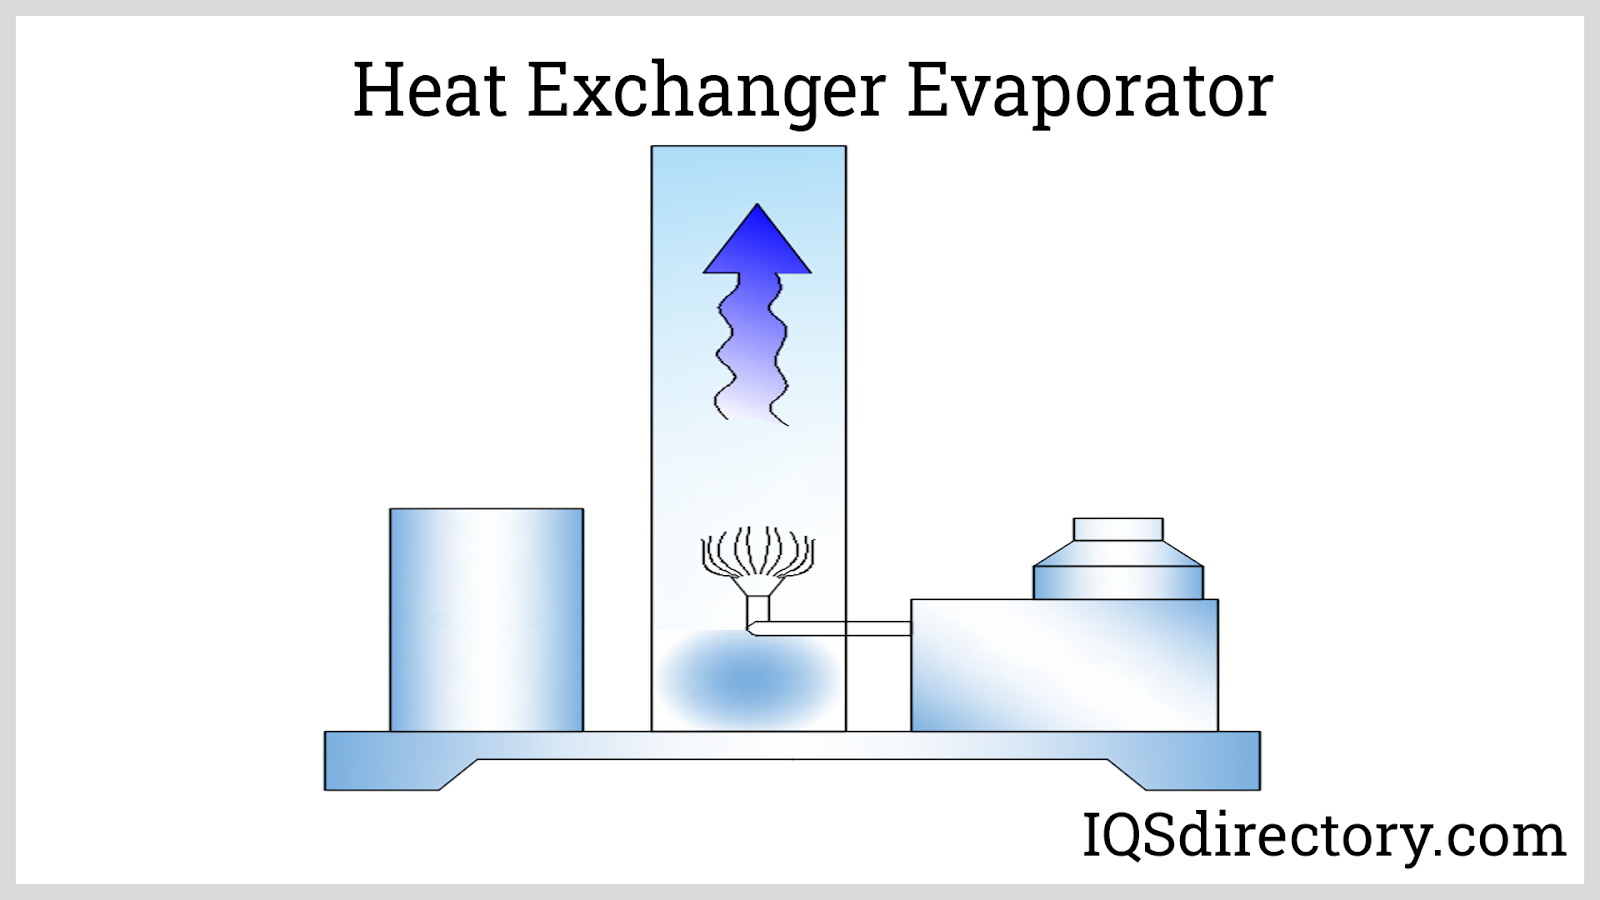 Heat Exchanger Evaporator